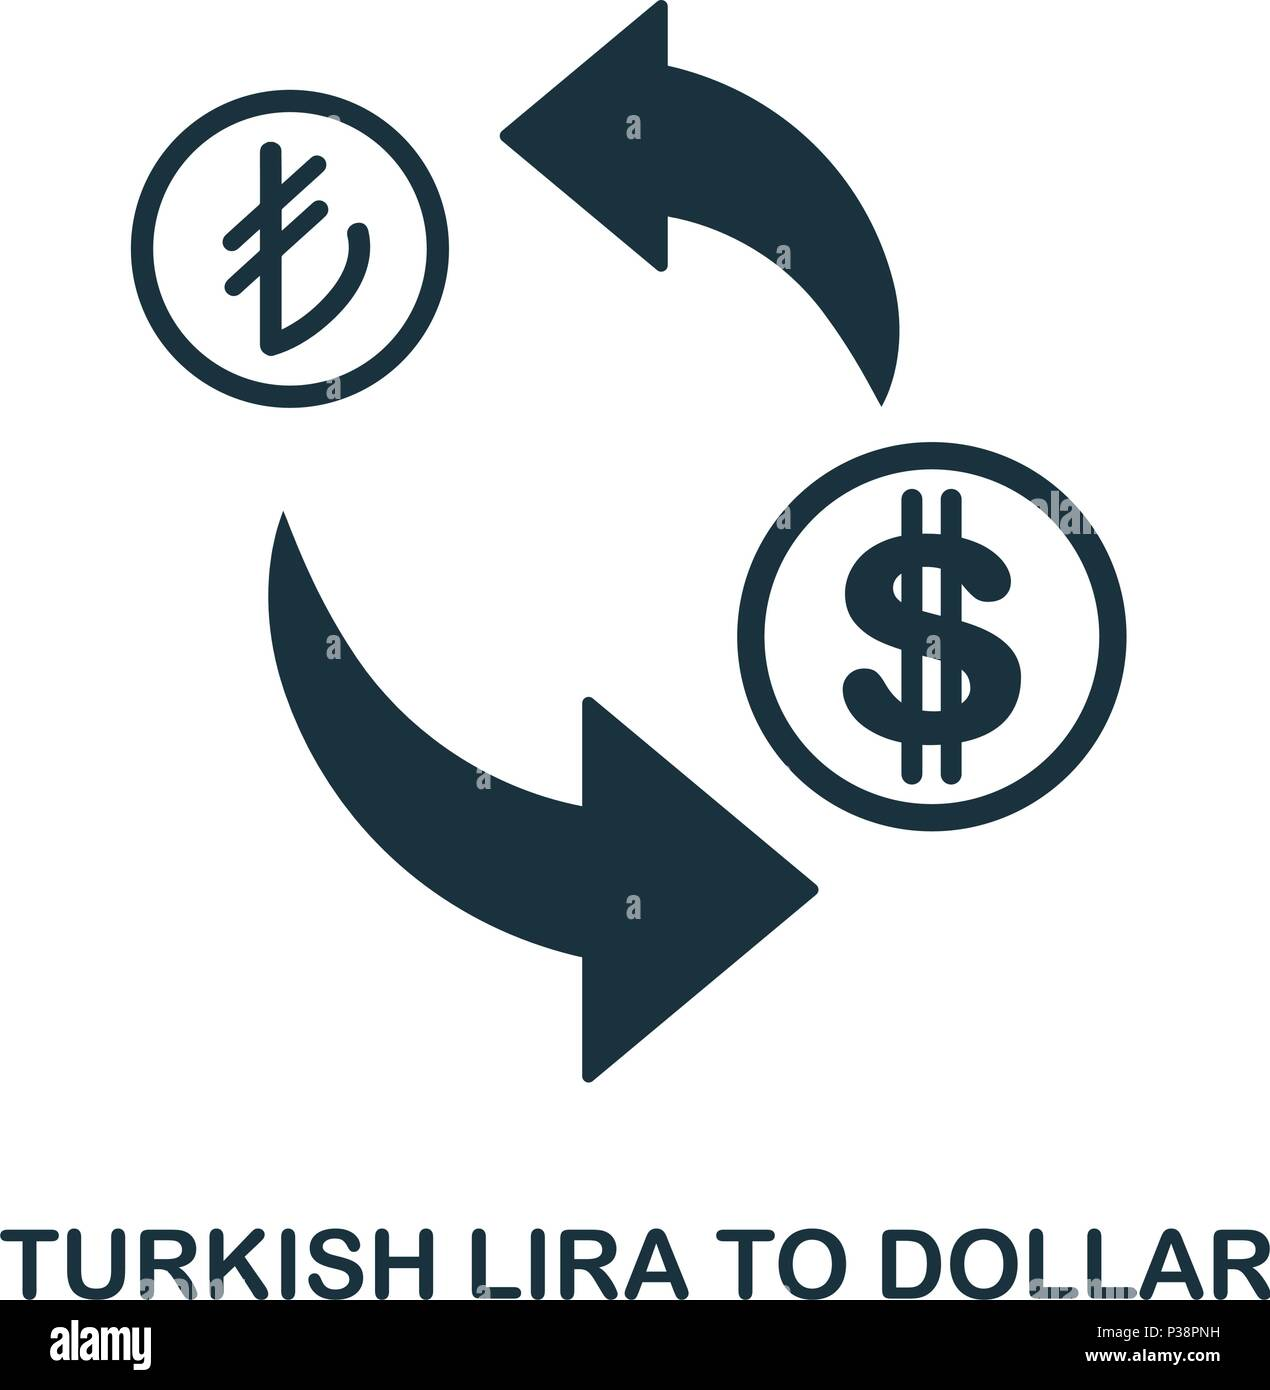 Lira Icon Stock Photos Lira Icon Stock Images Alamy